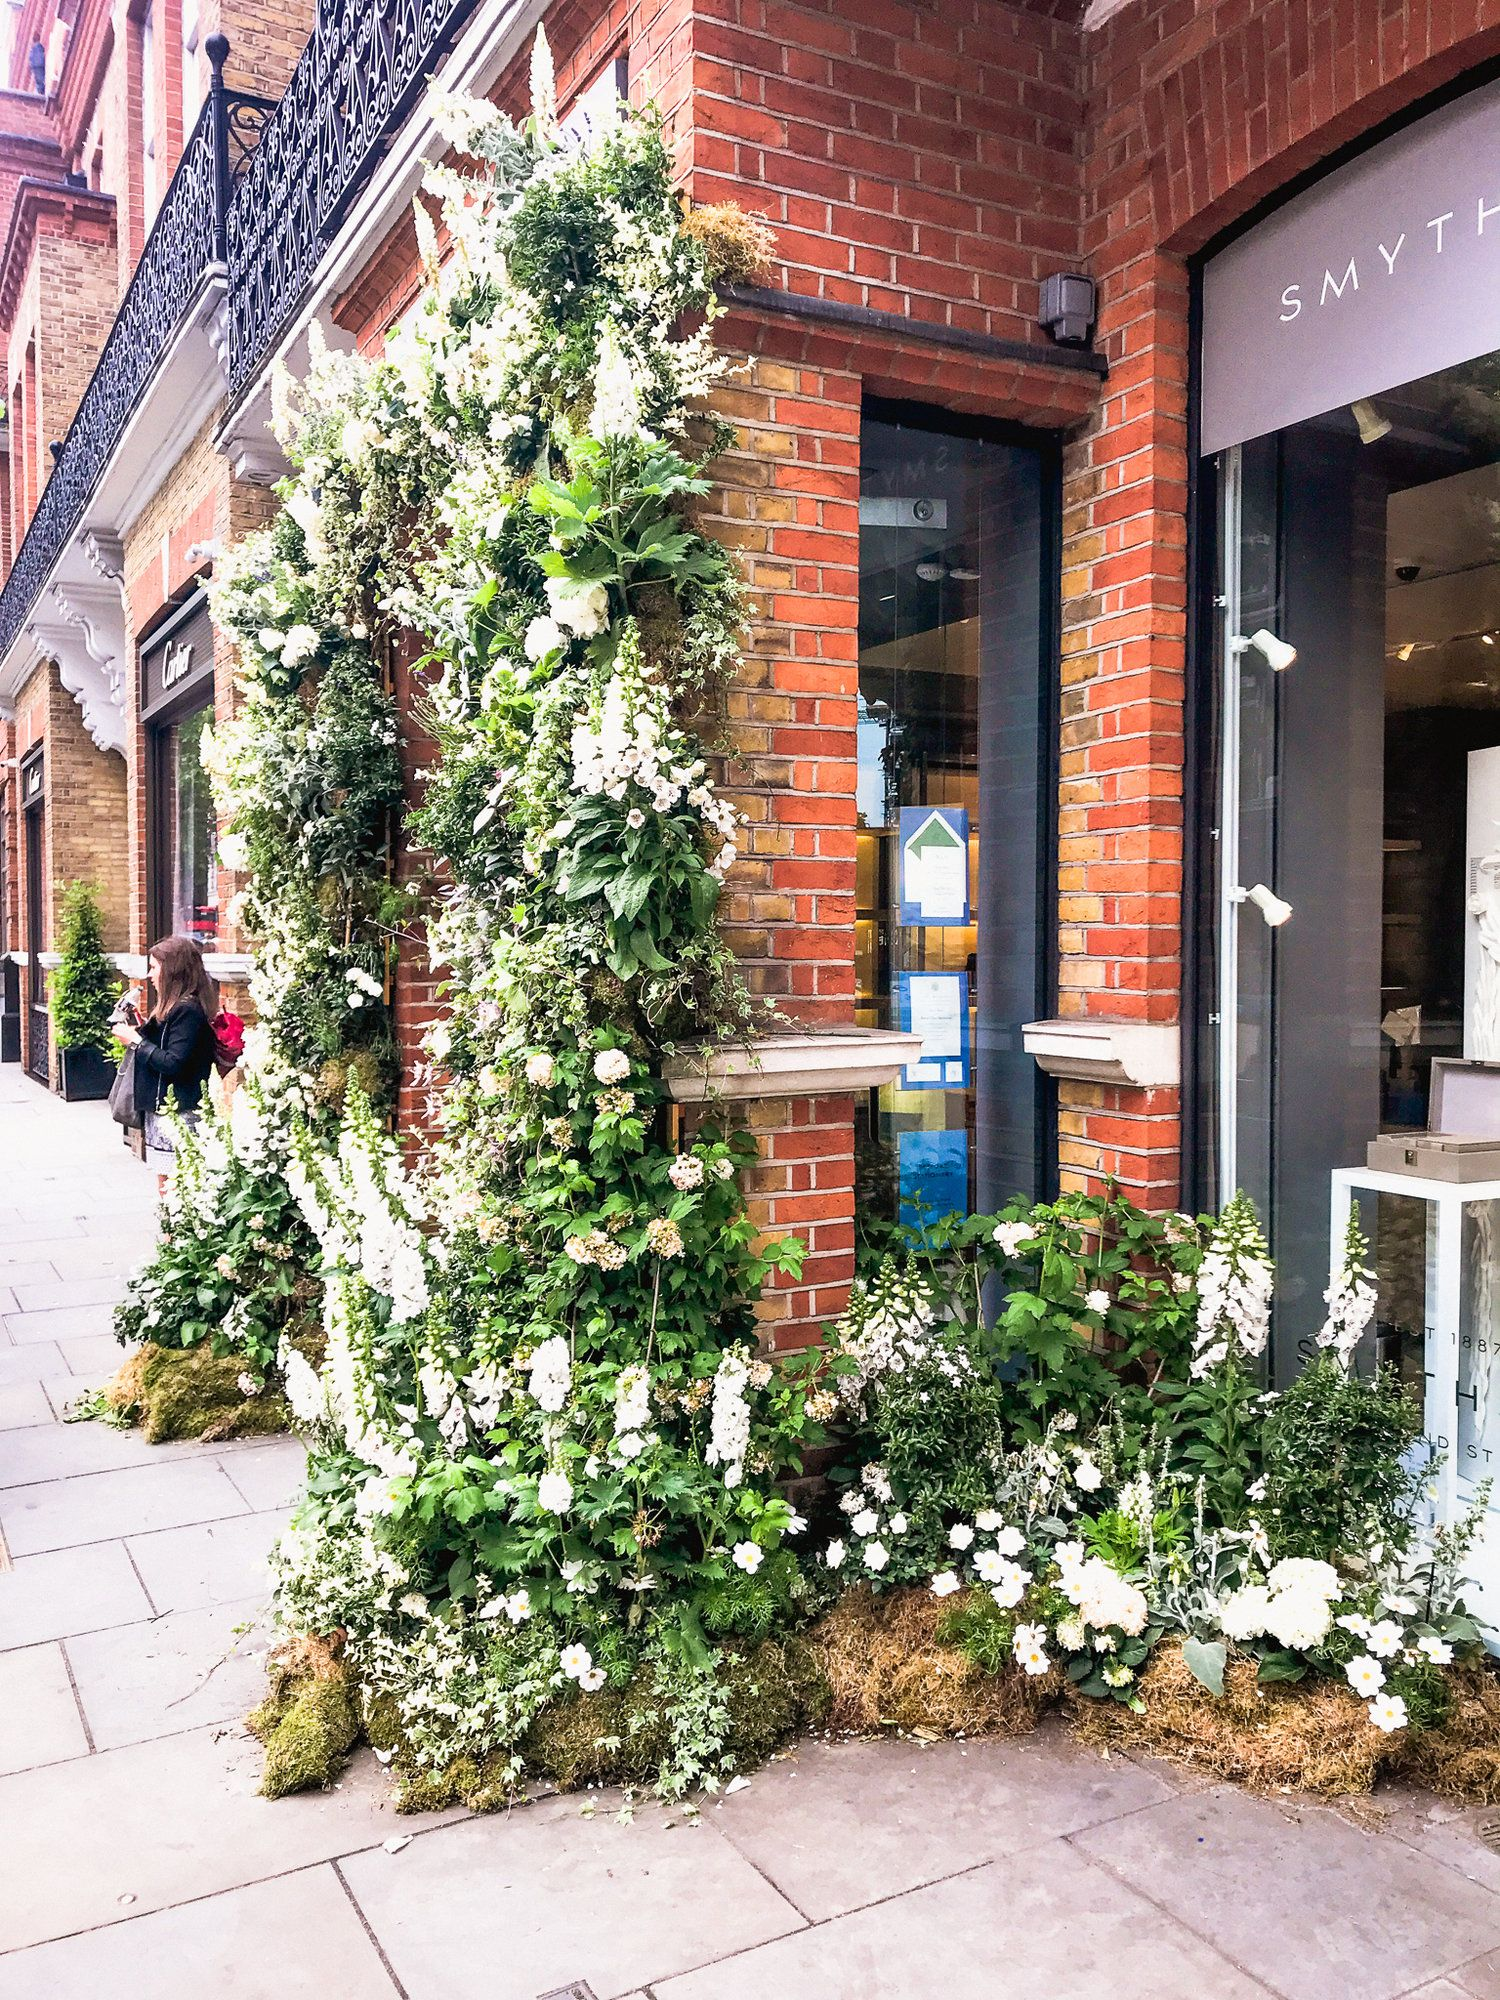 Chelsea Flower Show Best of London in Bloom Without a